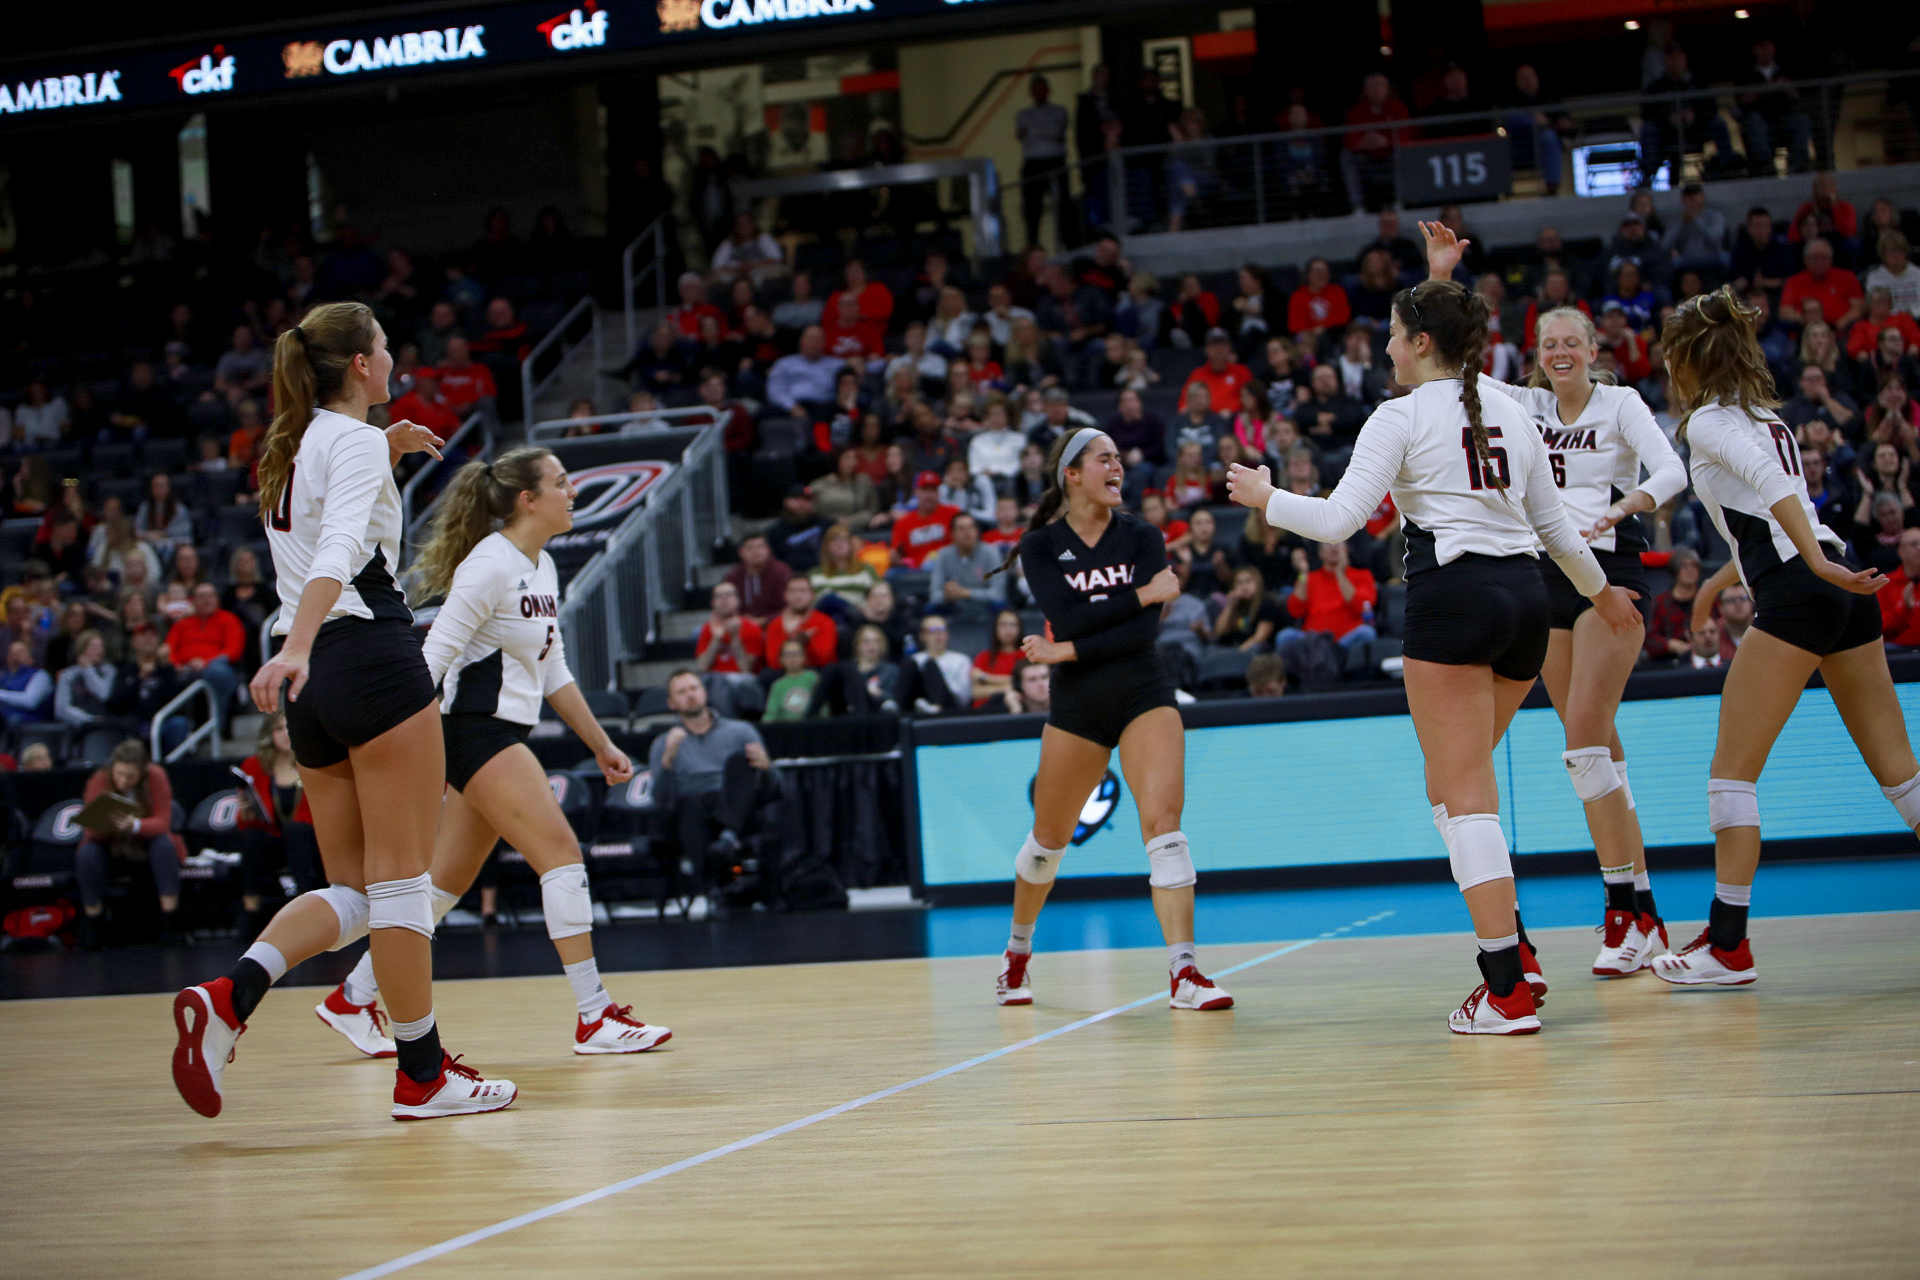 Omaha volleyball players celebrating on the court